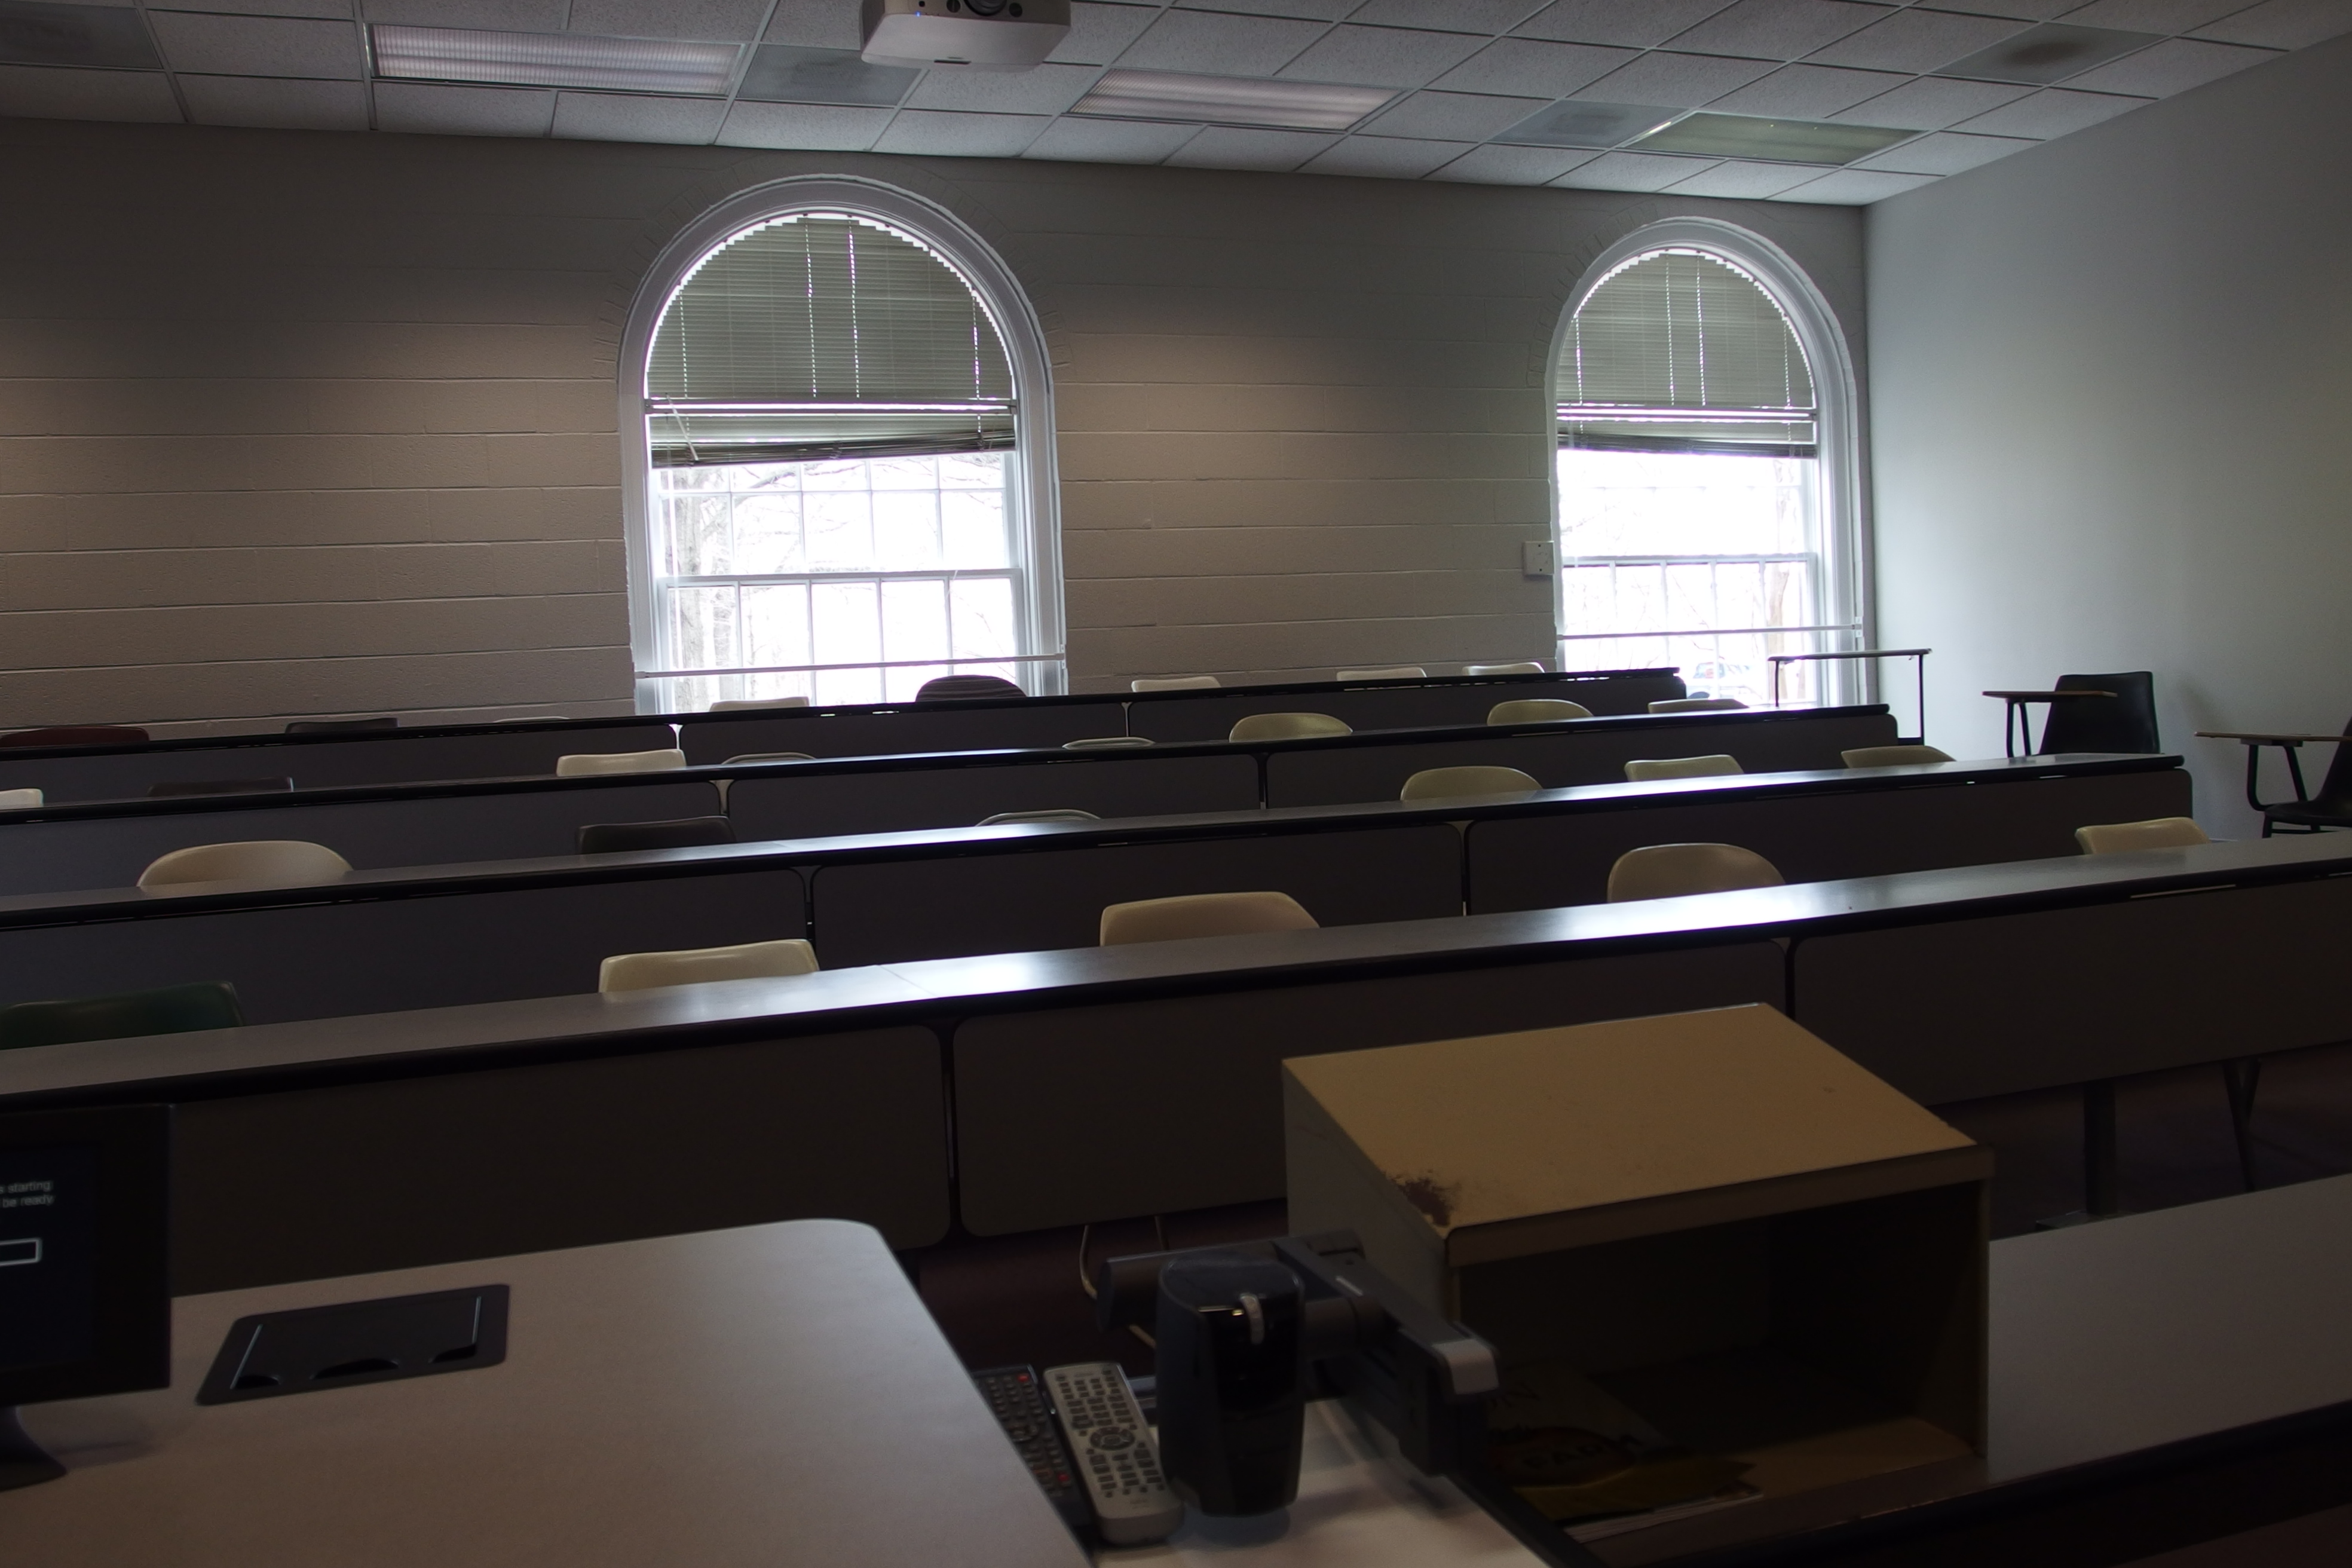 Photo of the classroom taken from the instructor's station looking at the student desks